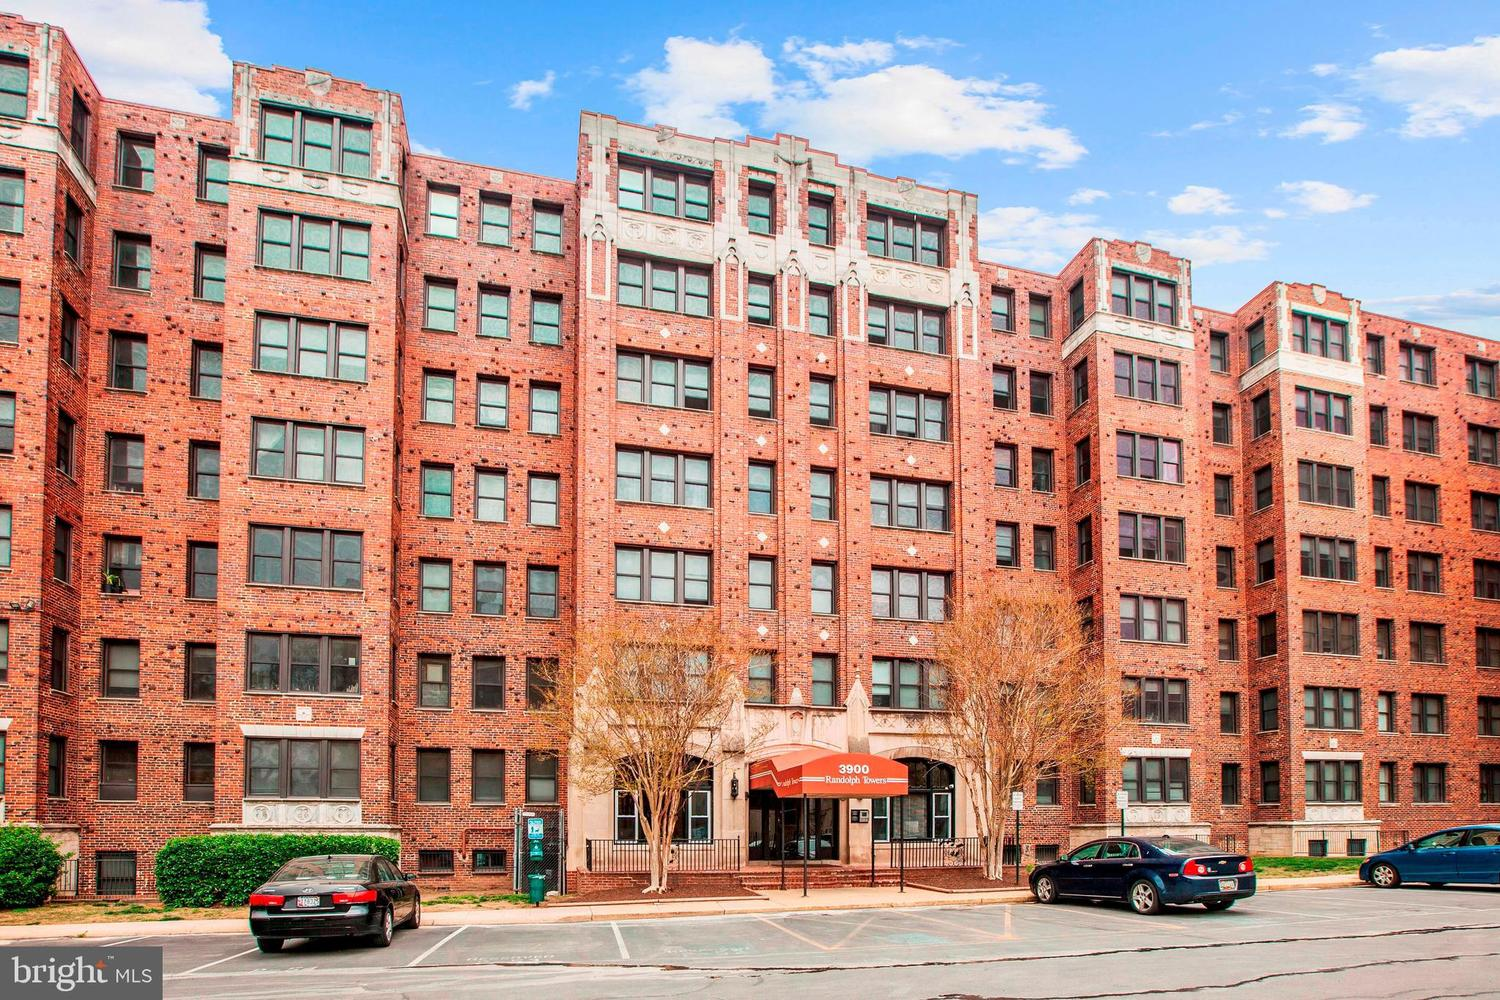 3900 14th Street Northwest, Unit 708 Washington, DC 20011